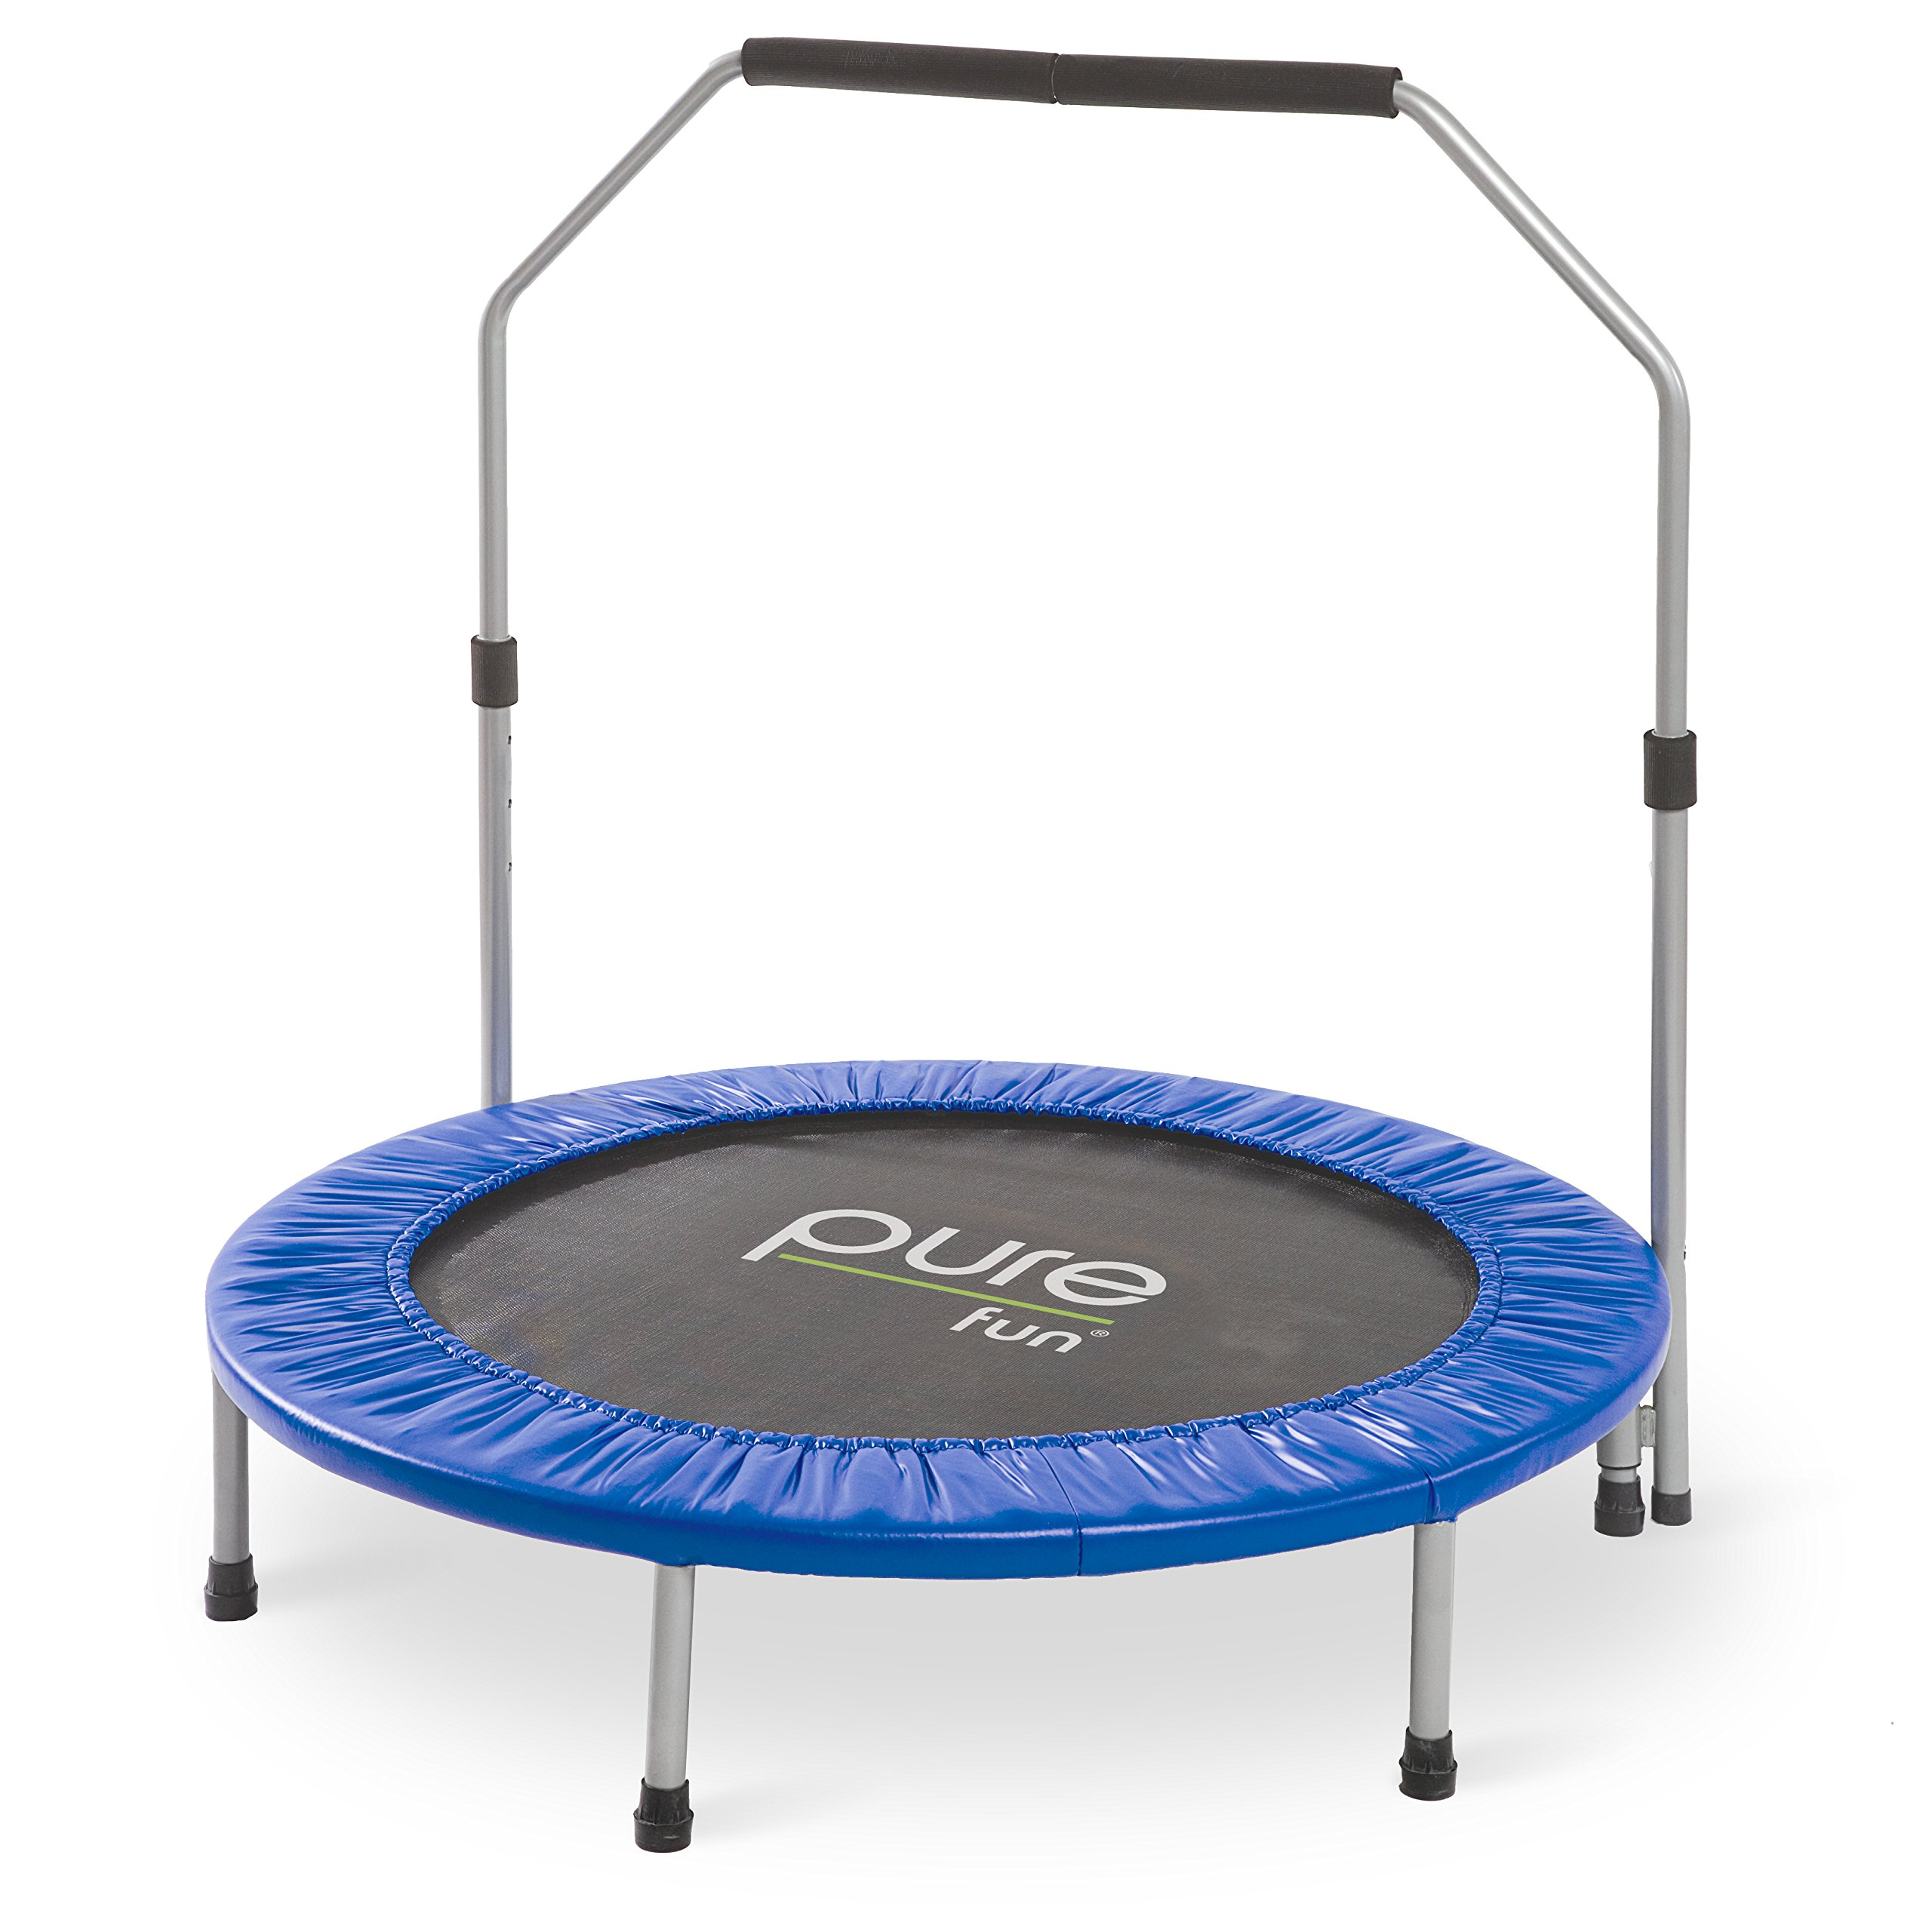 Pure Fun 40-inch Exercise Trampoline with Handrail by Pure Fun